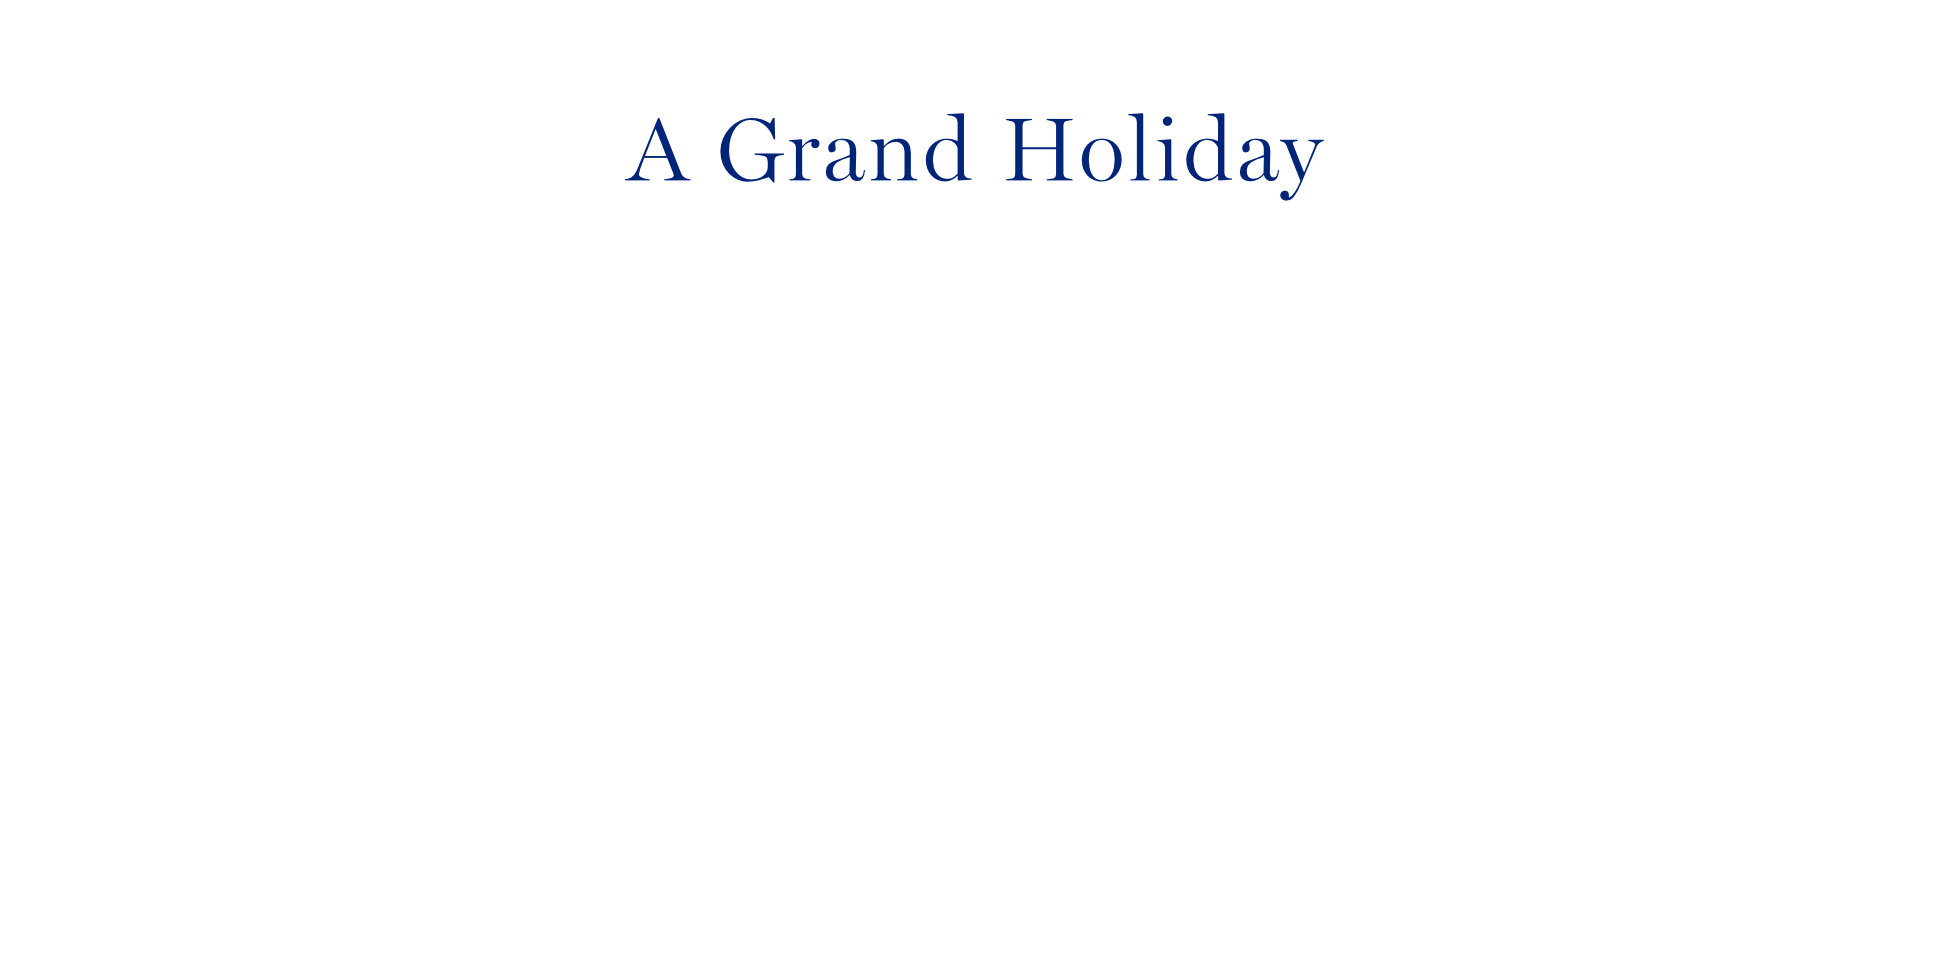 A GRAND HOLIDAY